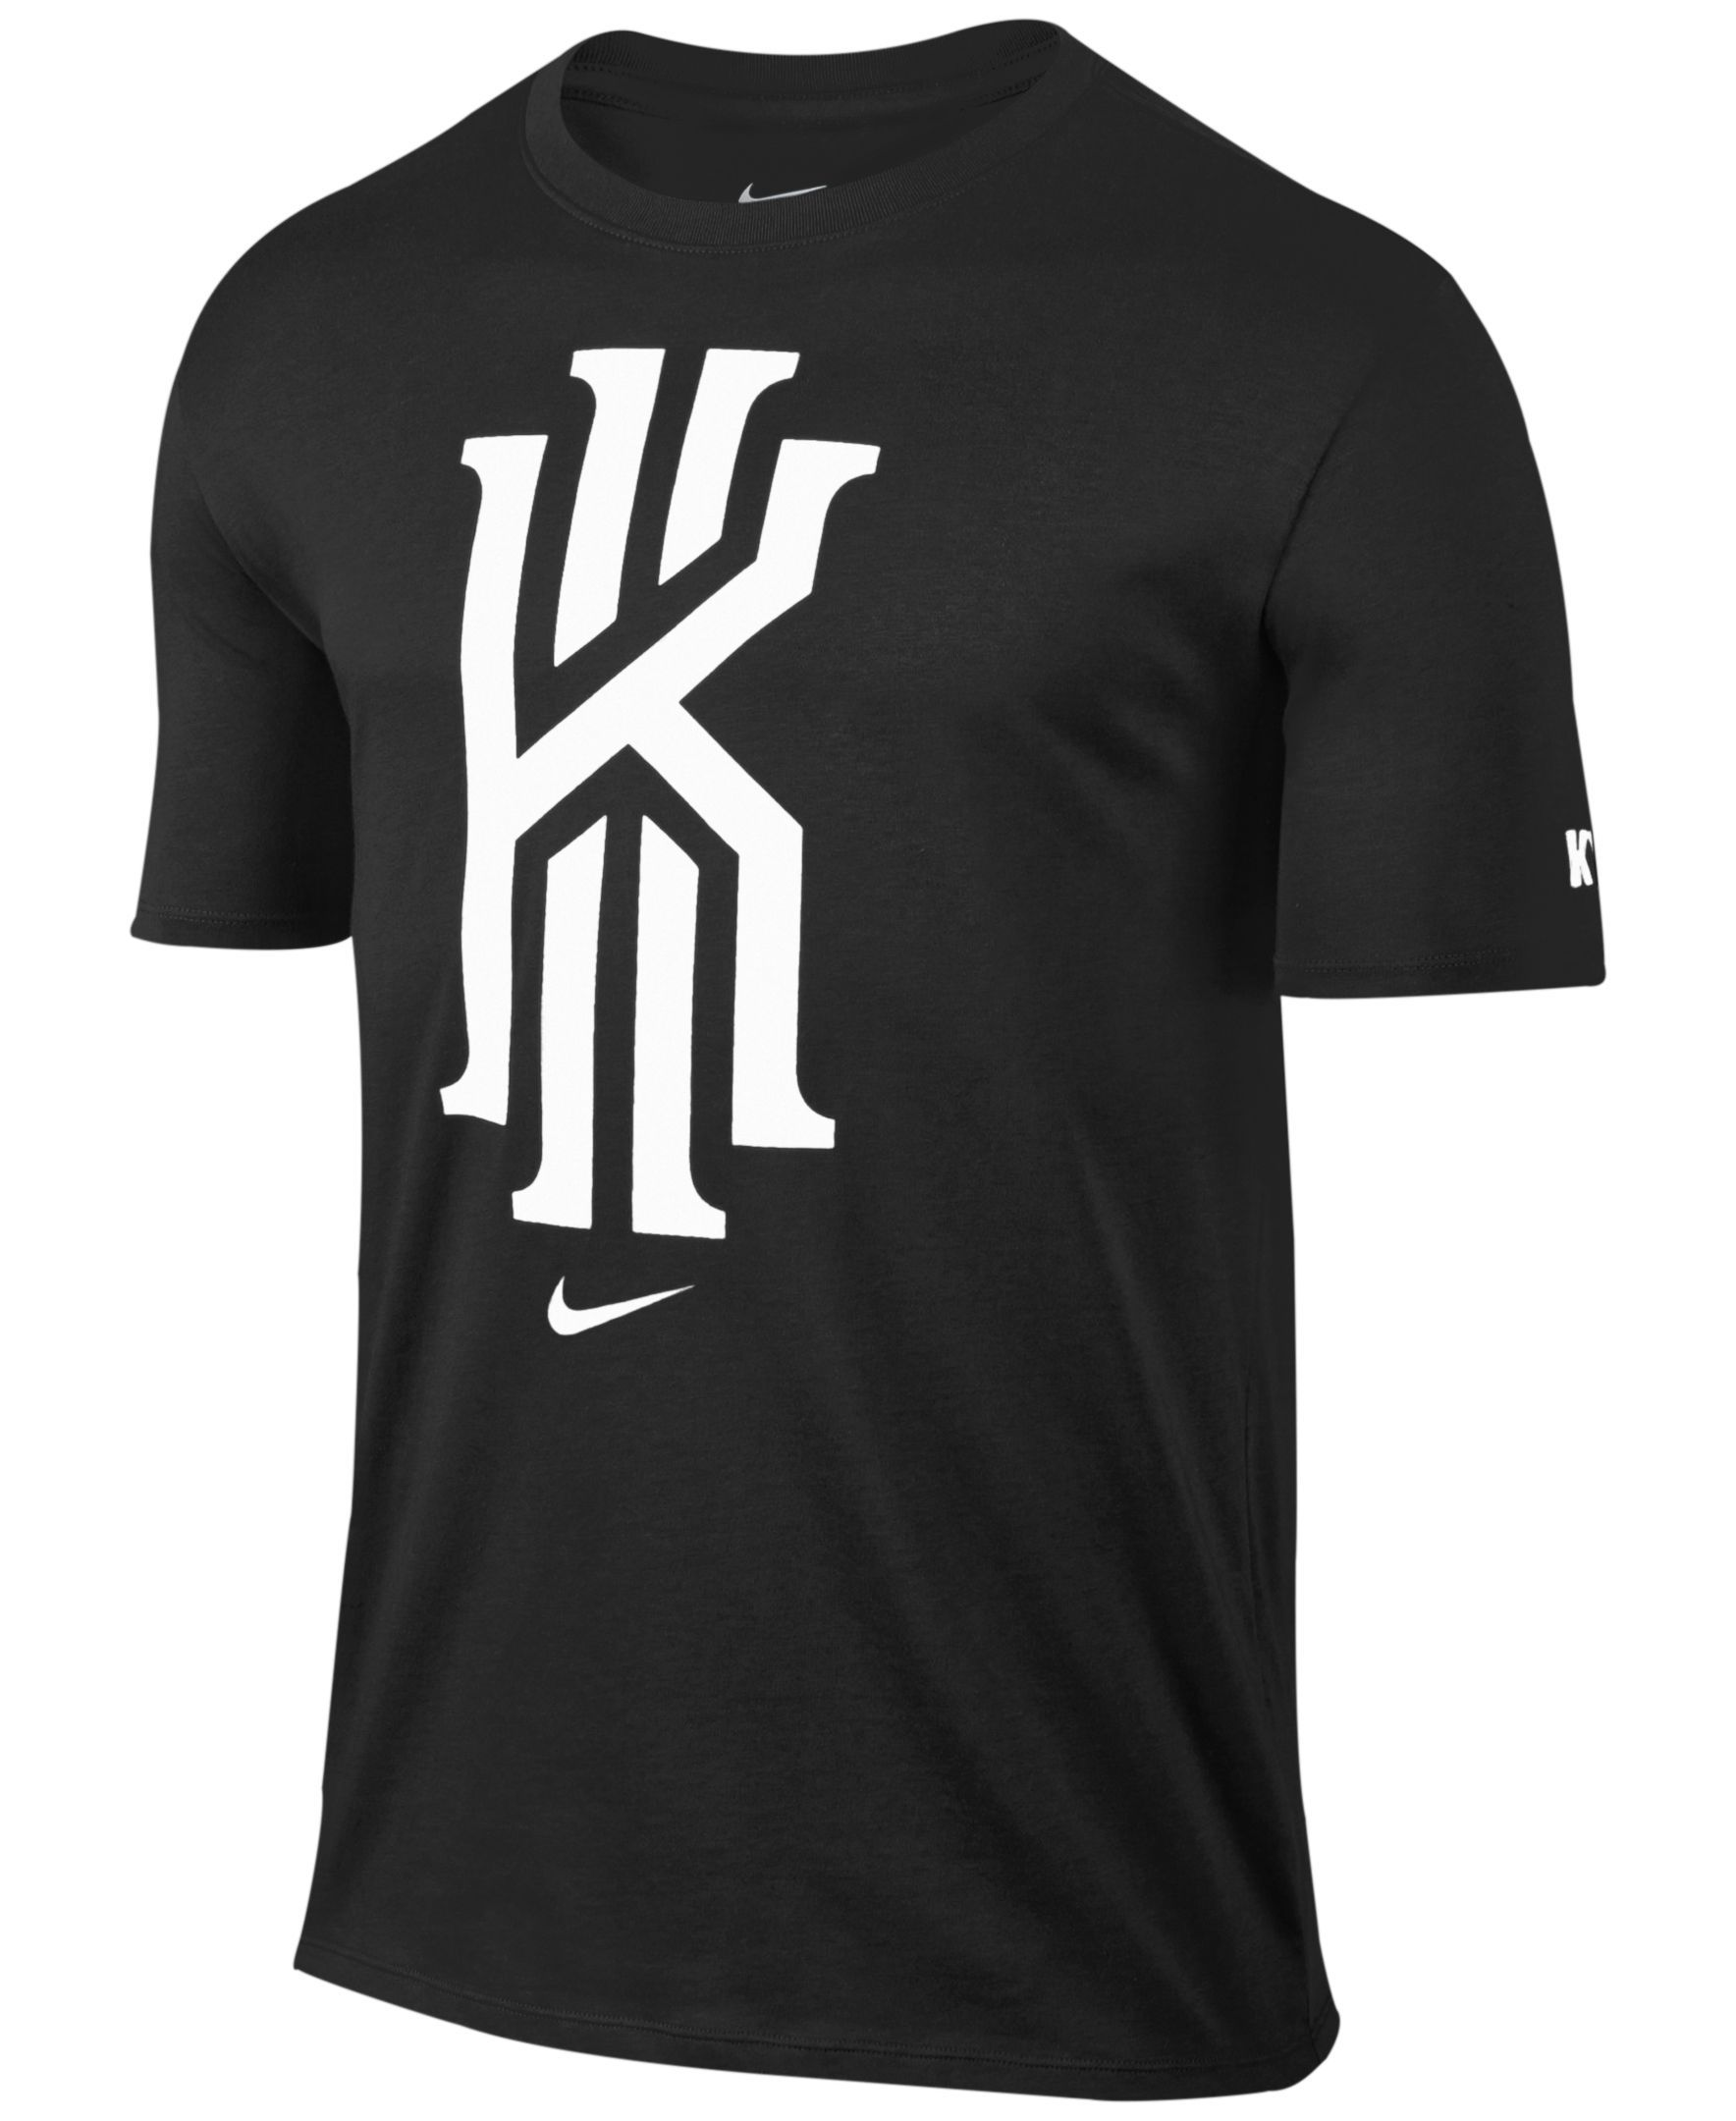 82bb95fc Nike Kyrie Foundation Logo Graphic T-Shirt | Products | Nike kyrie ...